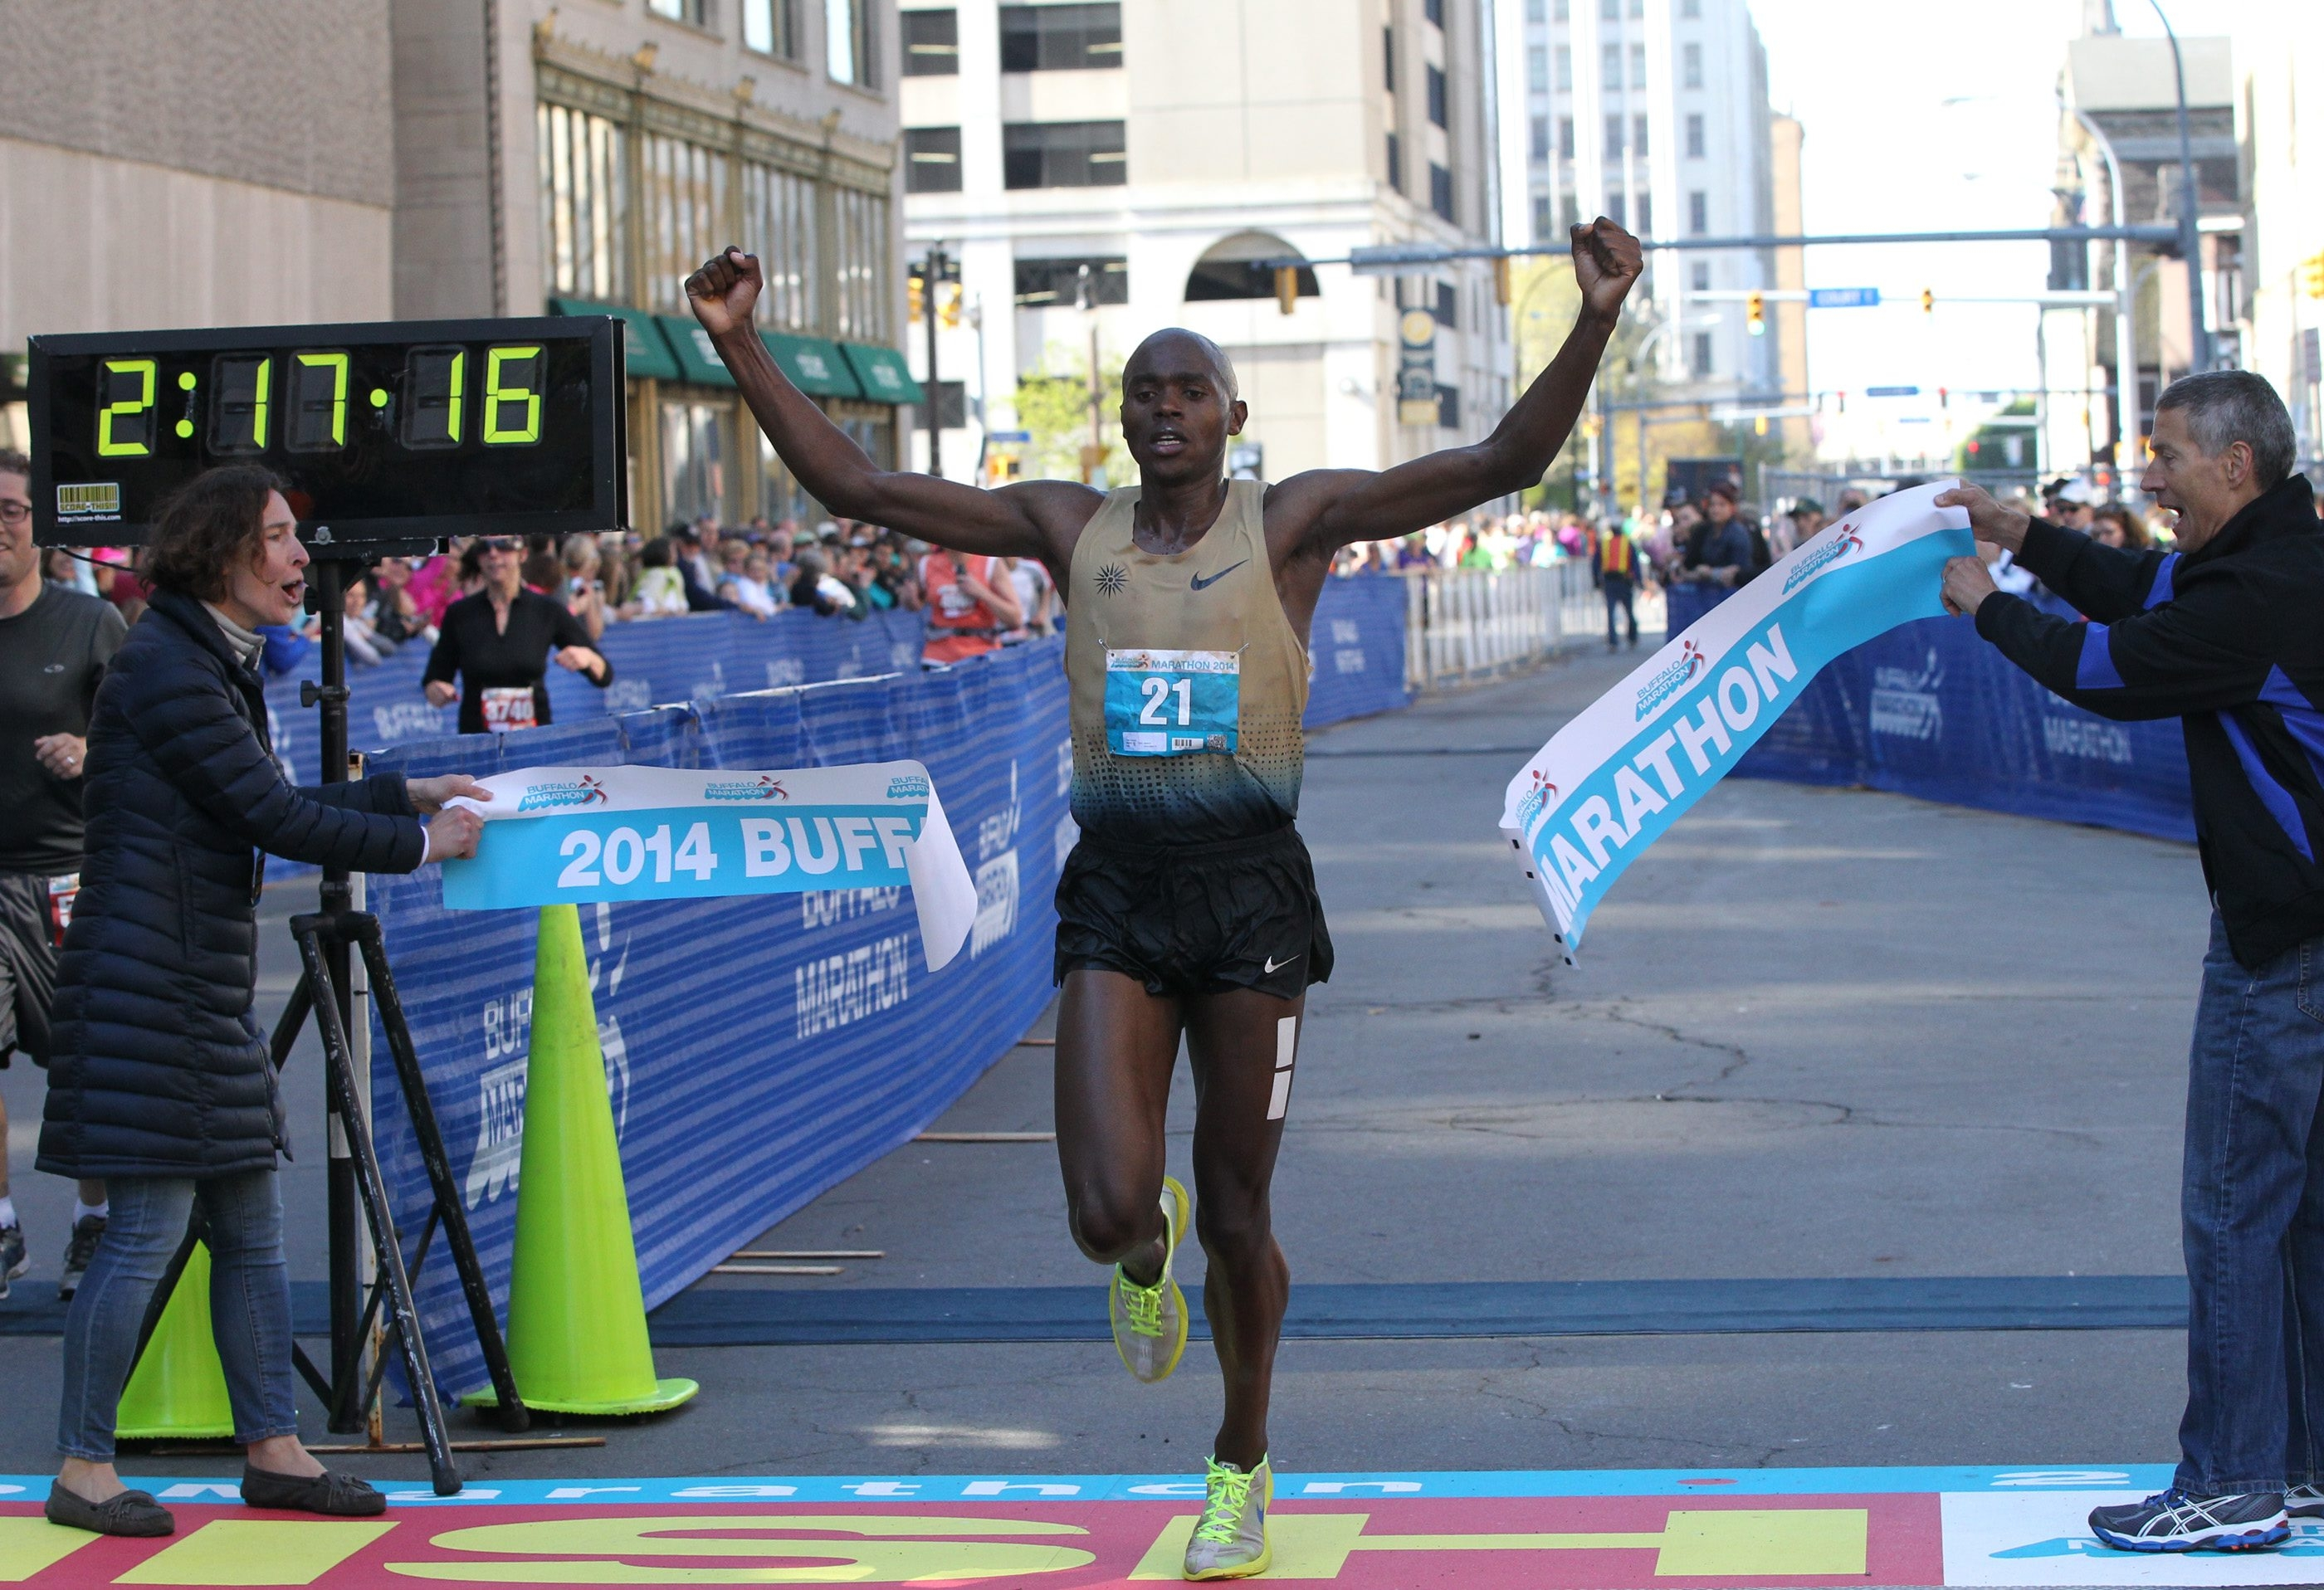 Kiplangat Tisia raises his arms in victory as he crosses the finish line in the Buffalo Marathon in record-setting fashion.  (James P. McCoy/Buffalo News)